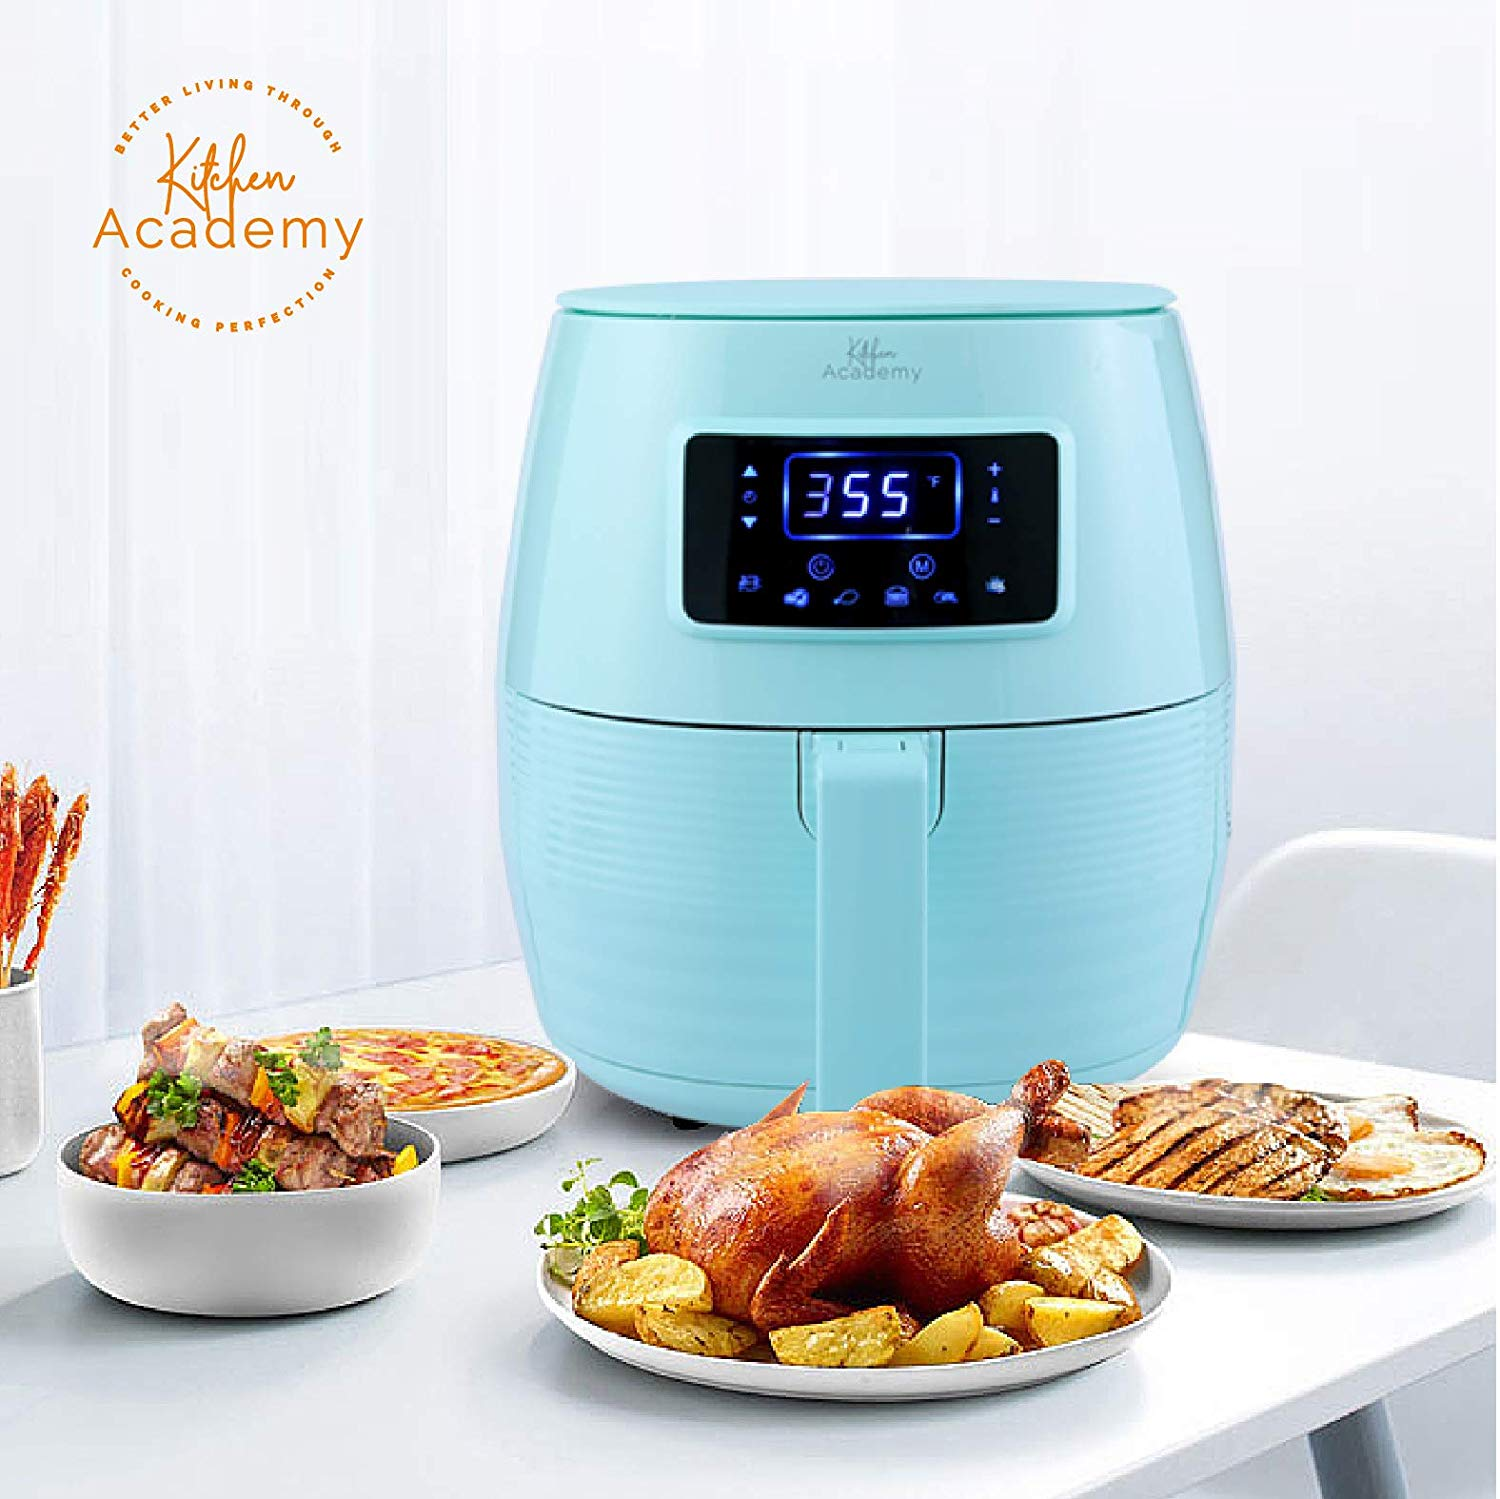 Kitchen Academy Air greaseless fryers